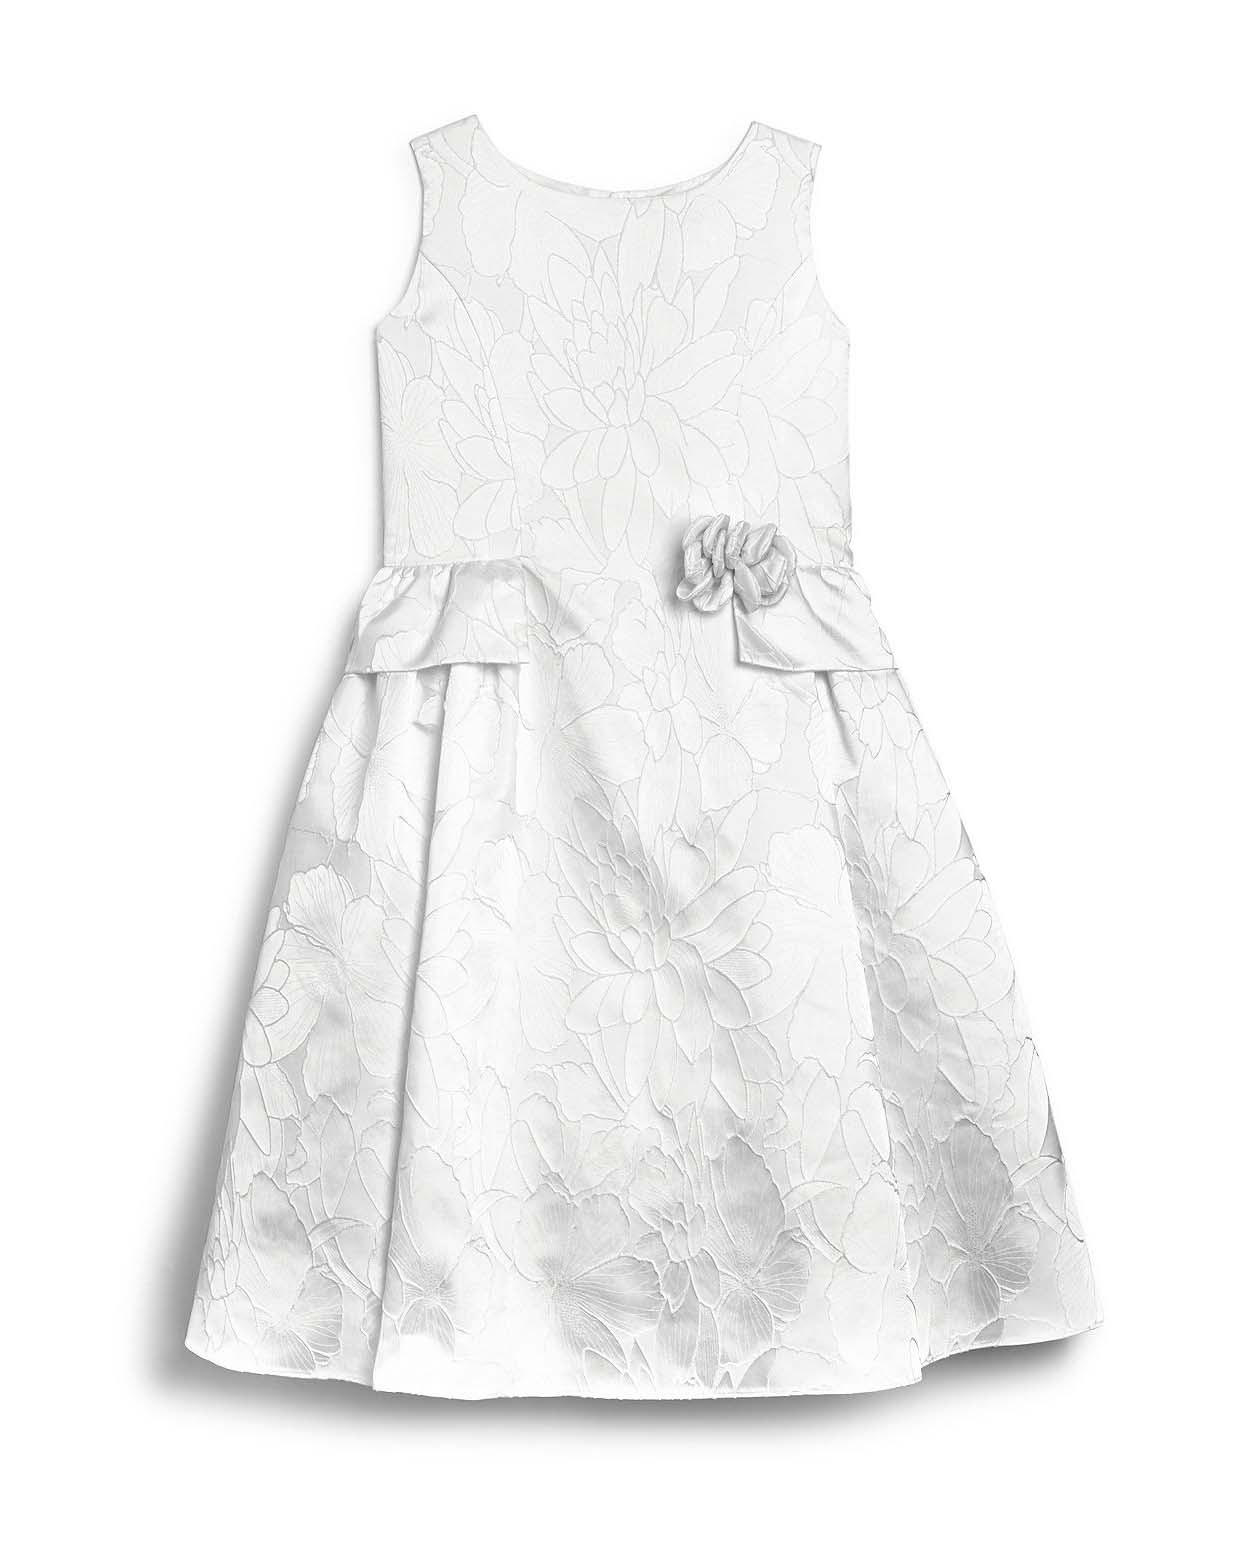 winter flower girl white sleeveless dress with floral patterned embroidery